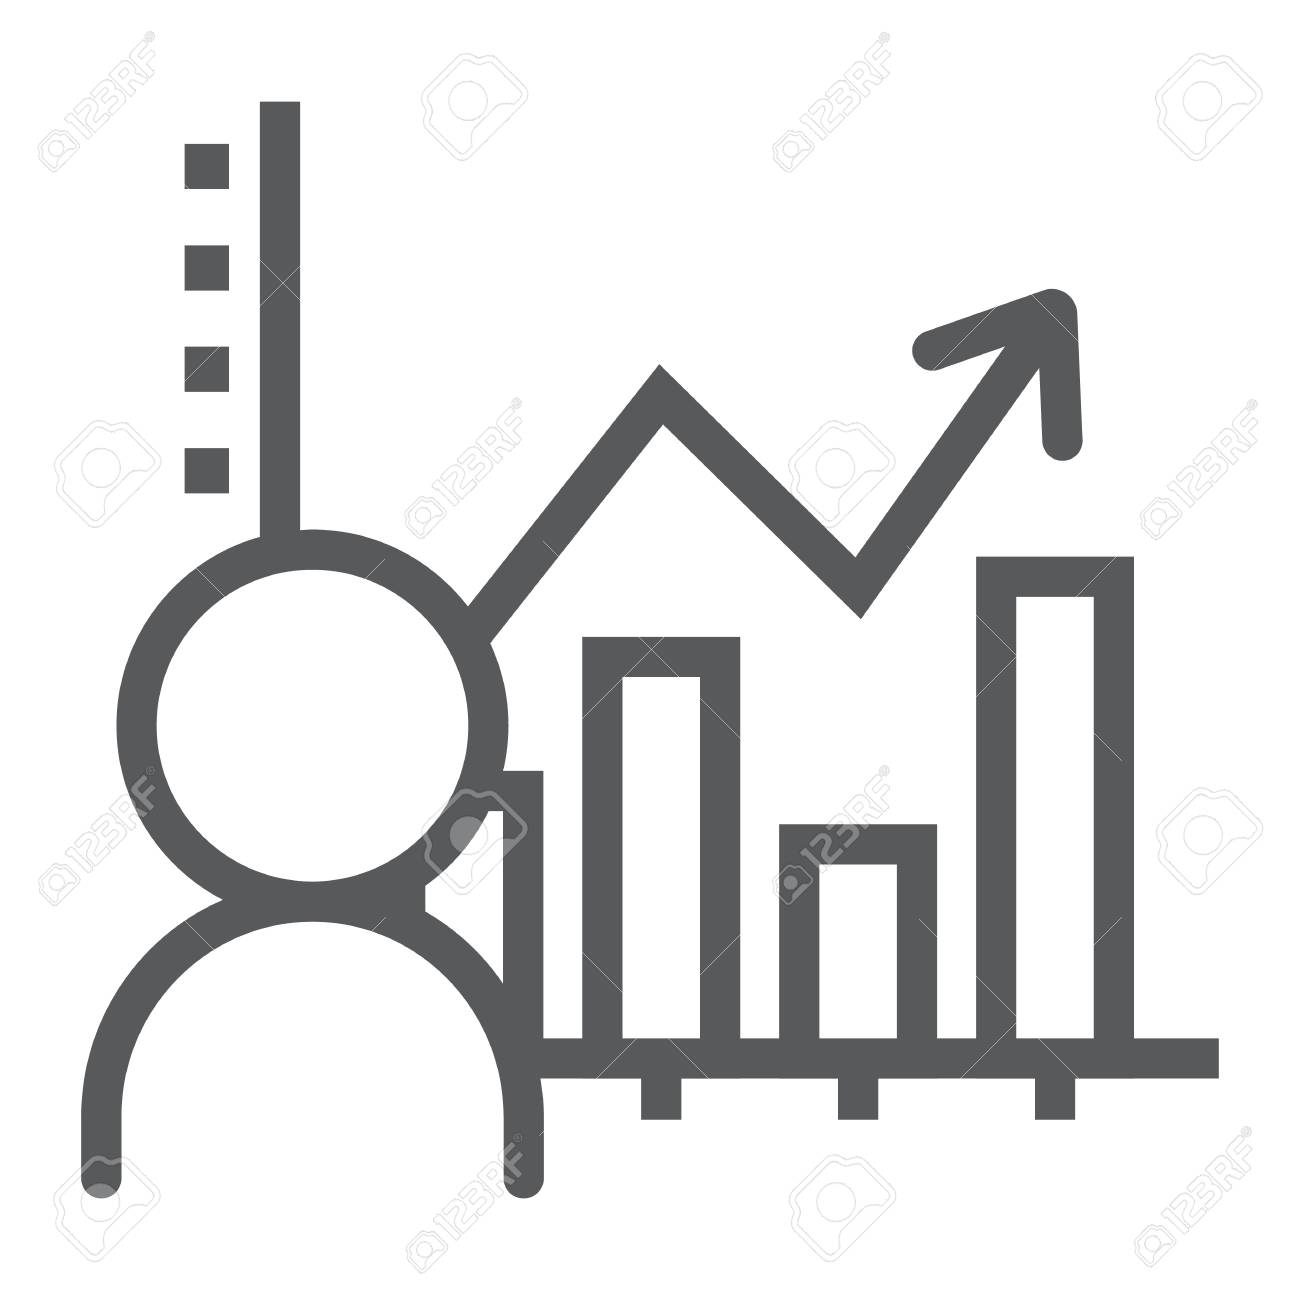 User analysis line icon, data and analytics, graph sign, vector